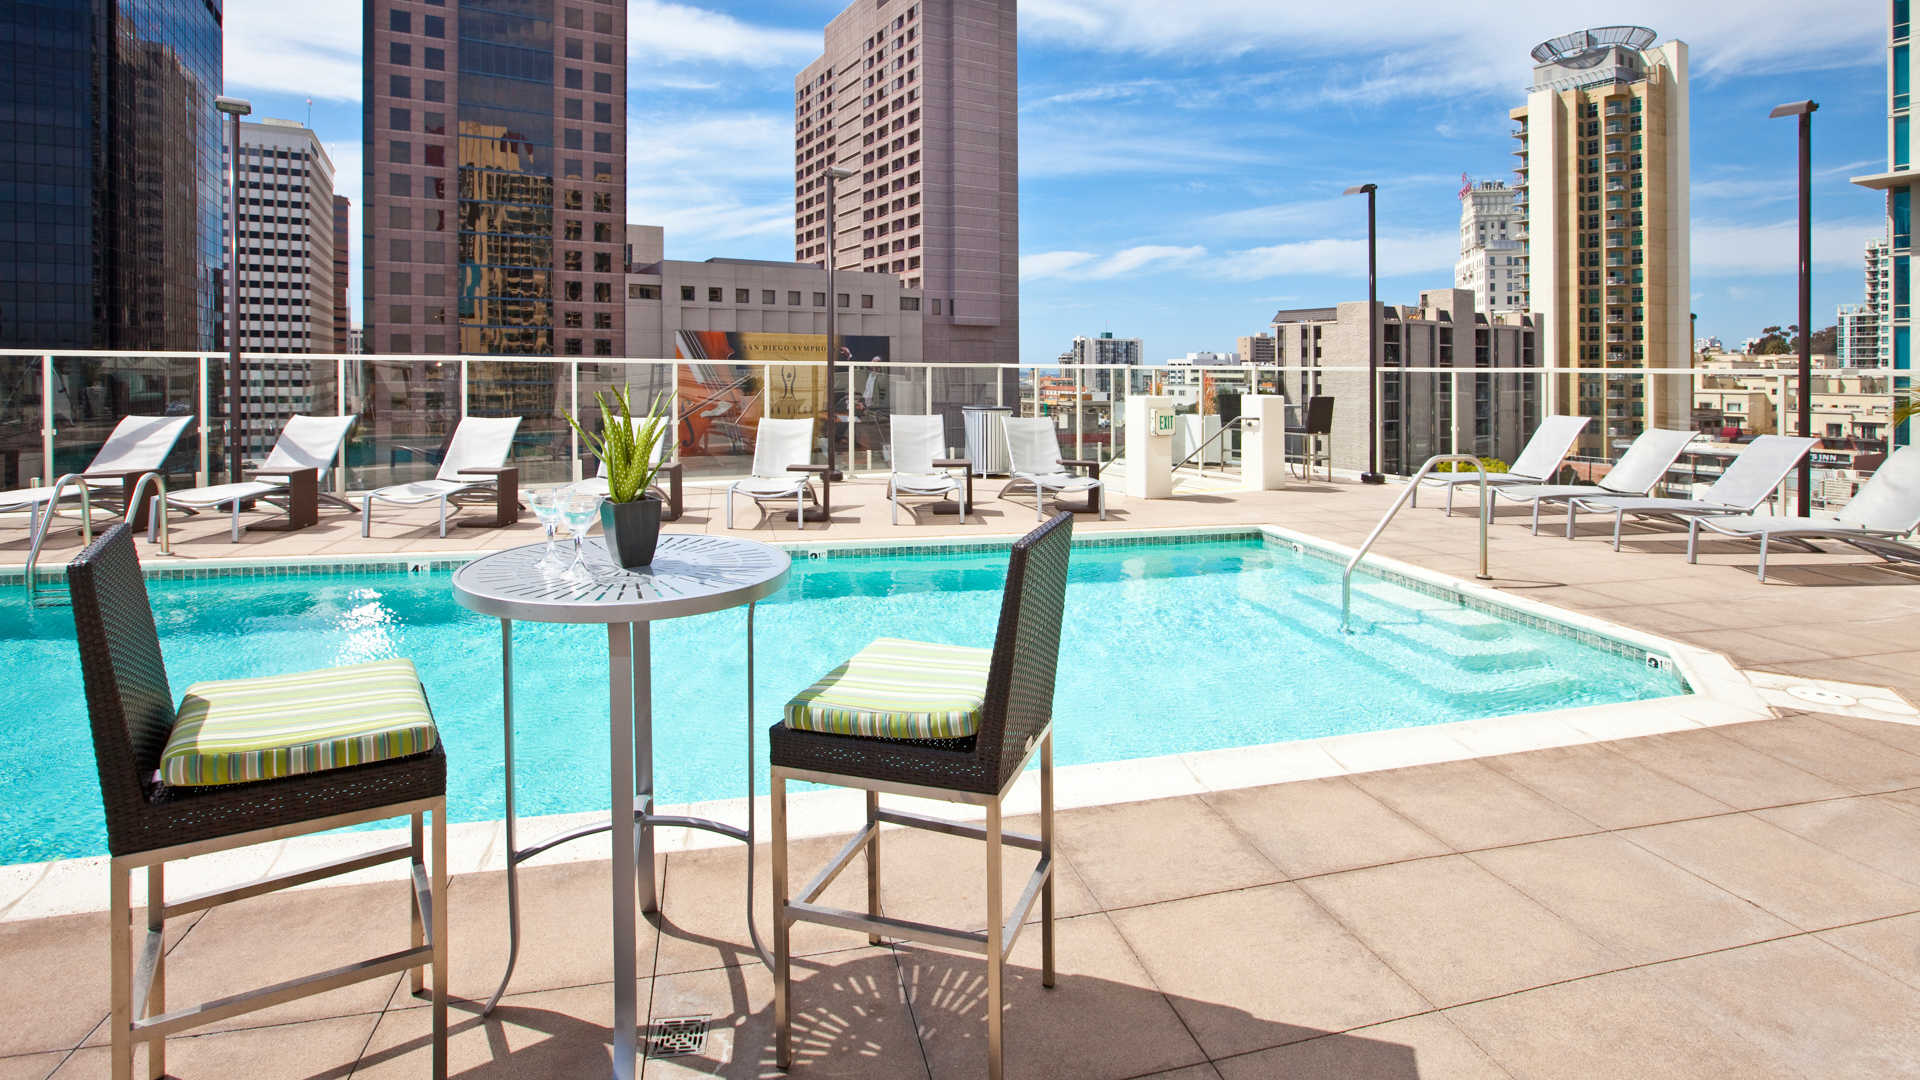 Vantage Pointe Apartments Reviews In Downtown San Go 1281 9th Avenue 112 Equityapartments